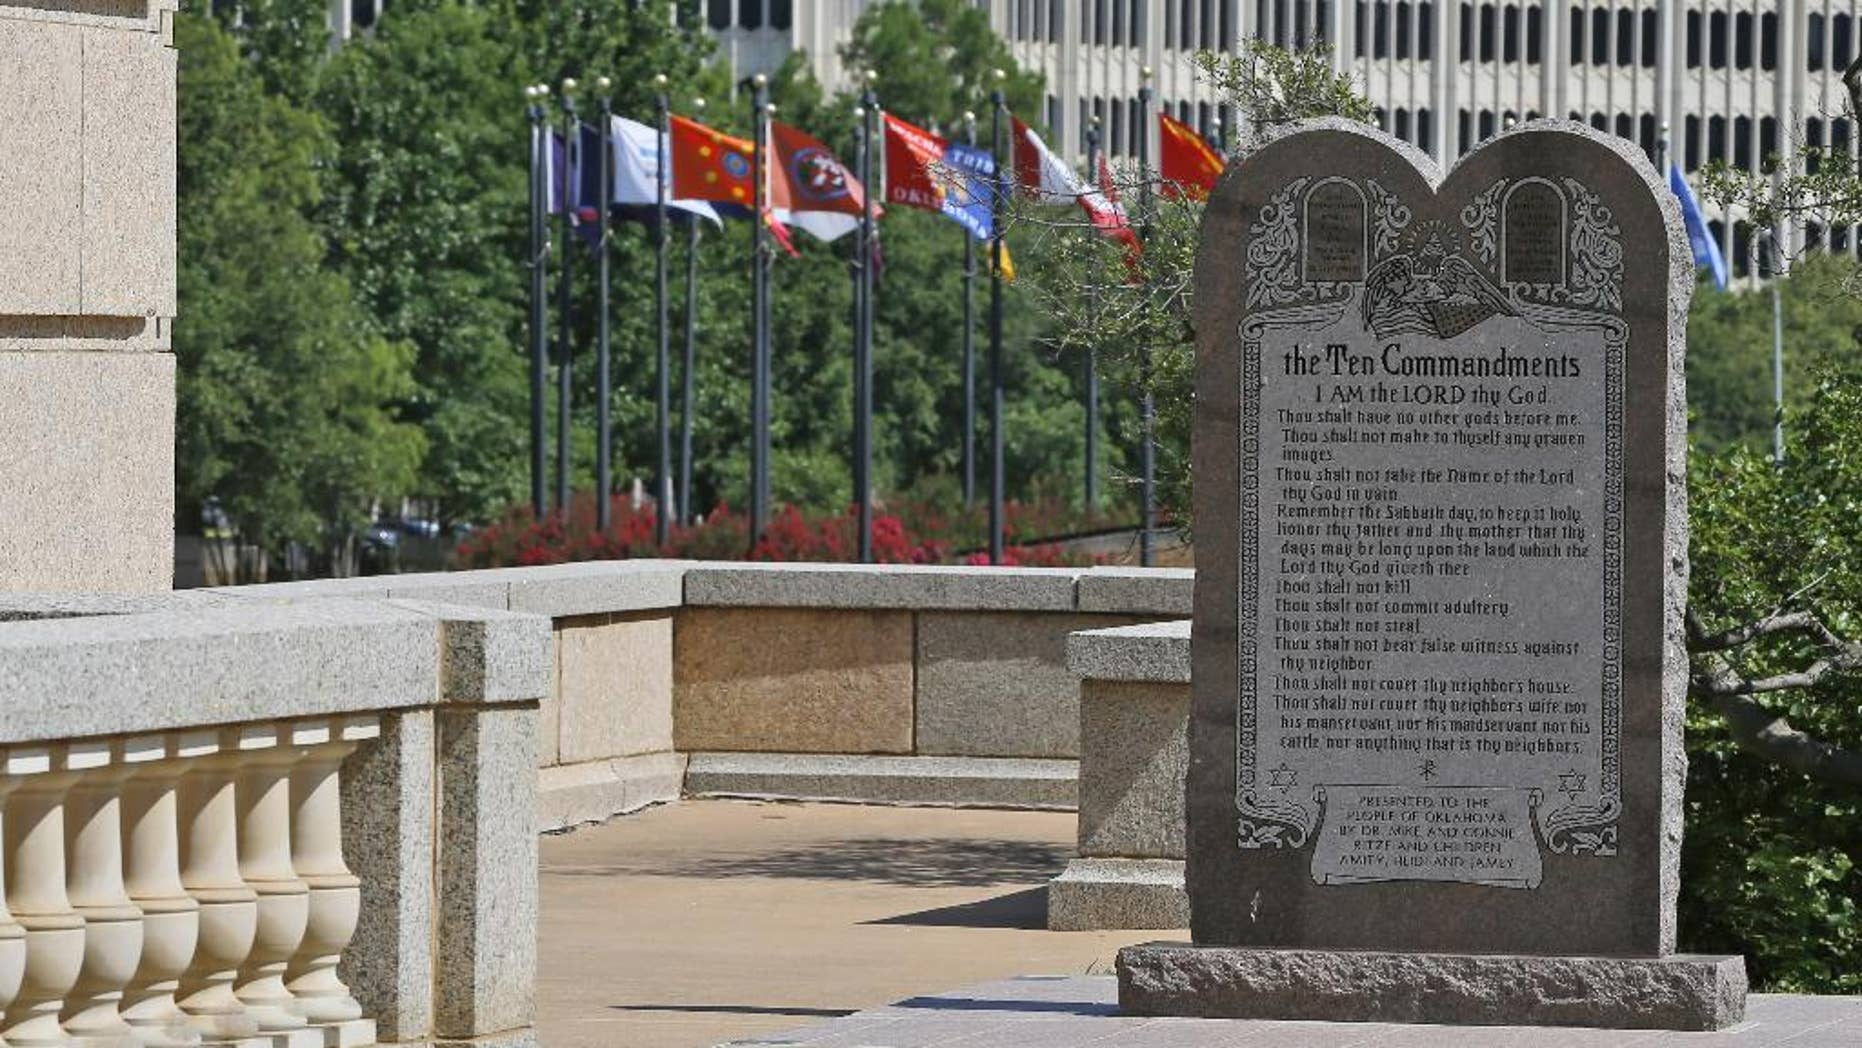 The Ten Commandments monument is pictured at the state Capitol in Oklahoma City, Tuesday, June 30, 2015. Oklahoma's Supreme Court says the monument must be removed because it indirectly benefits the Jewish and Christian faiths in violation of the state constitution. (AP Photo/Sue Ogrocki)